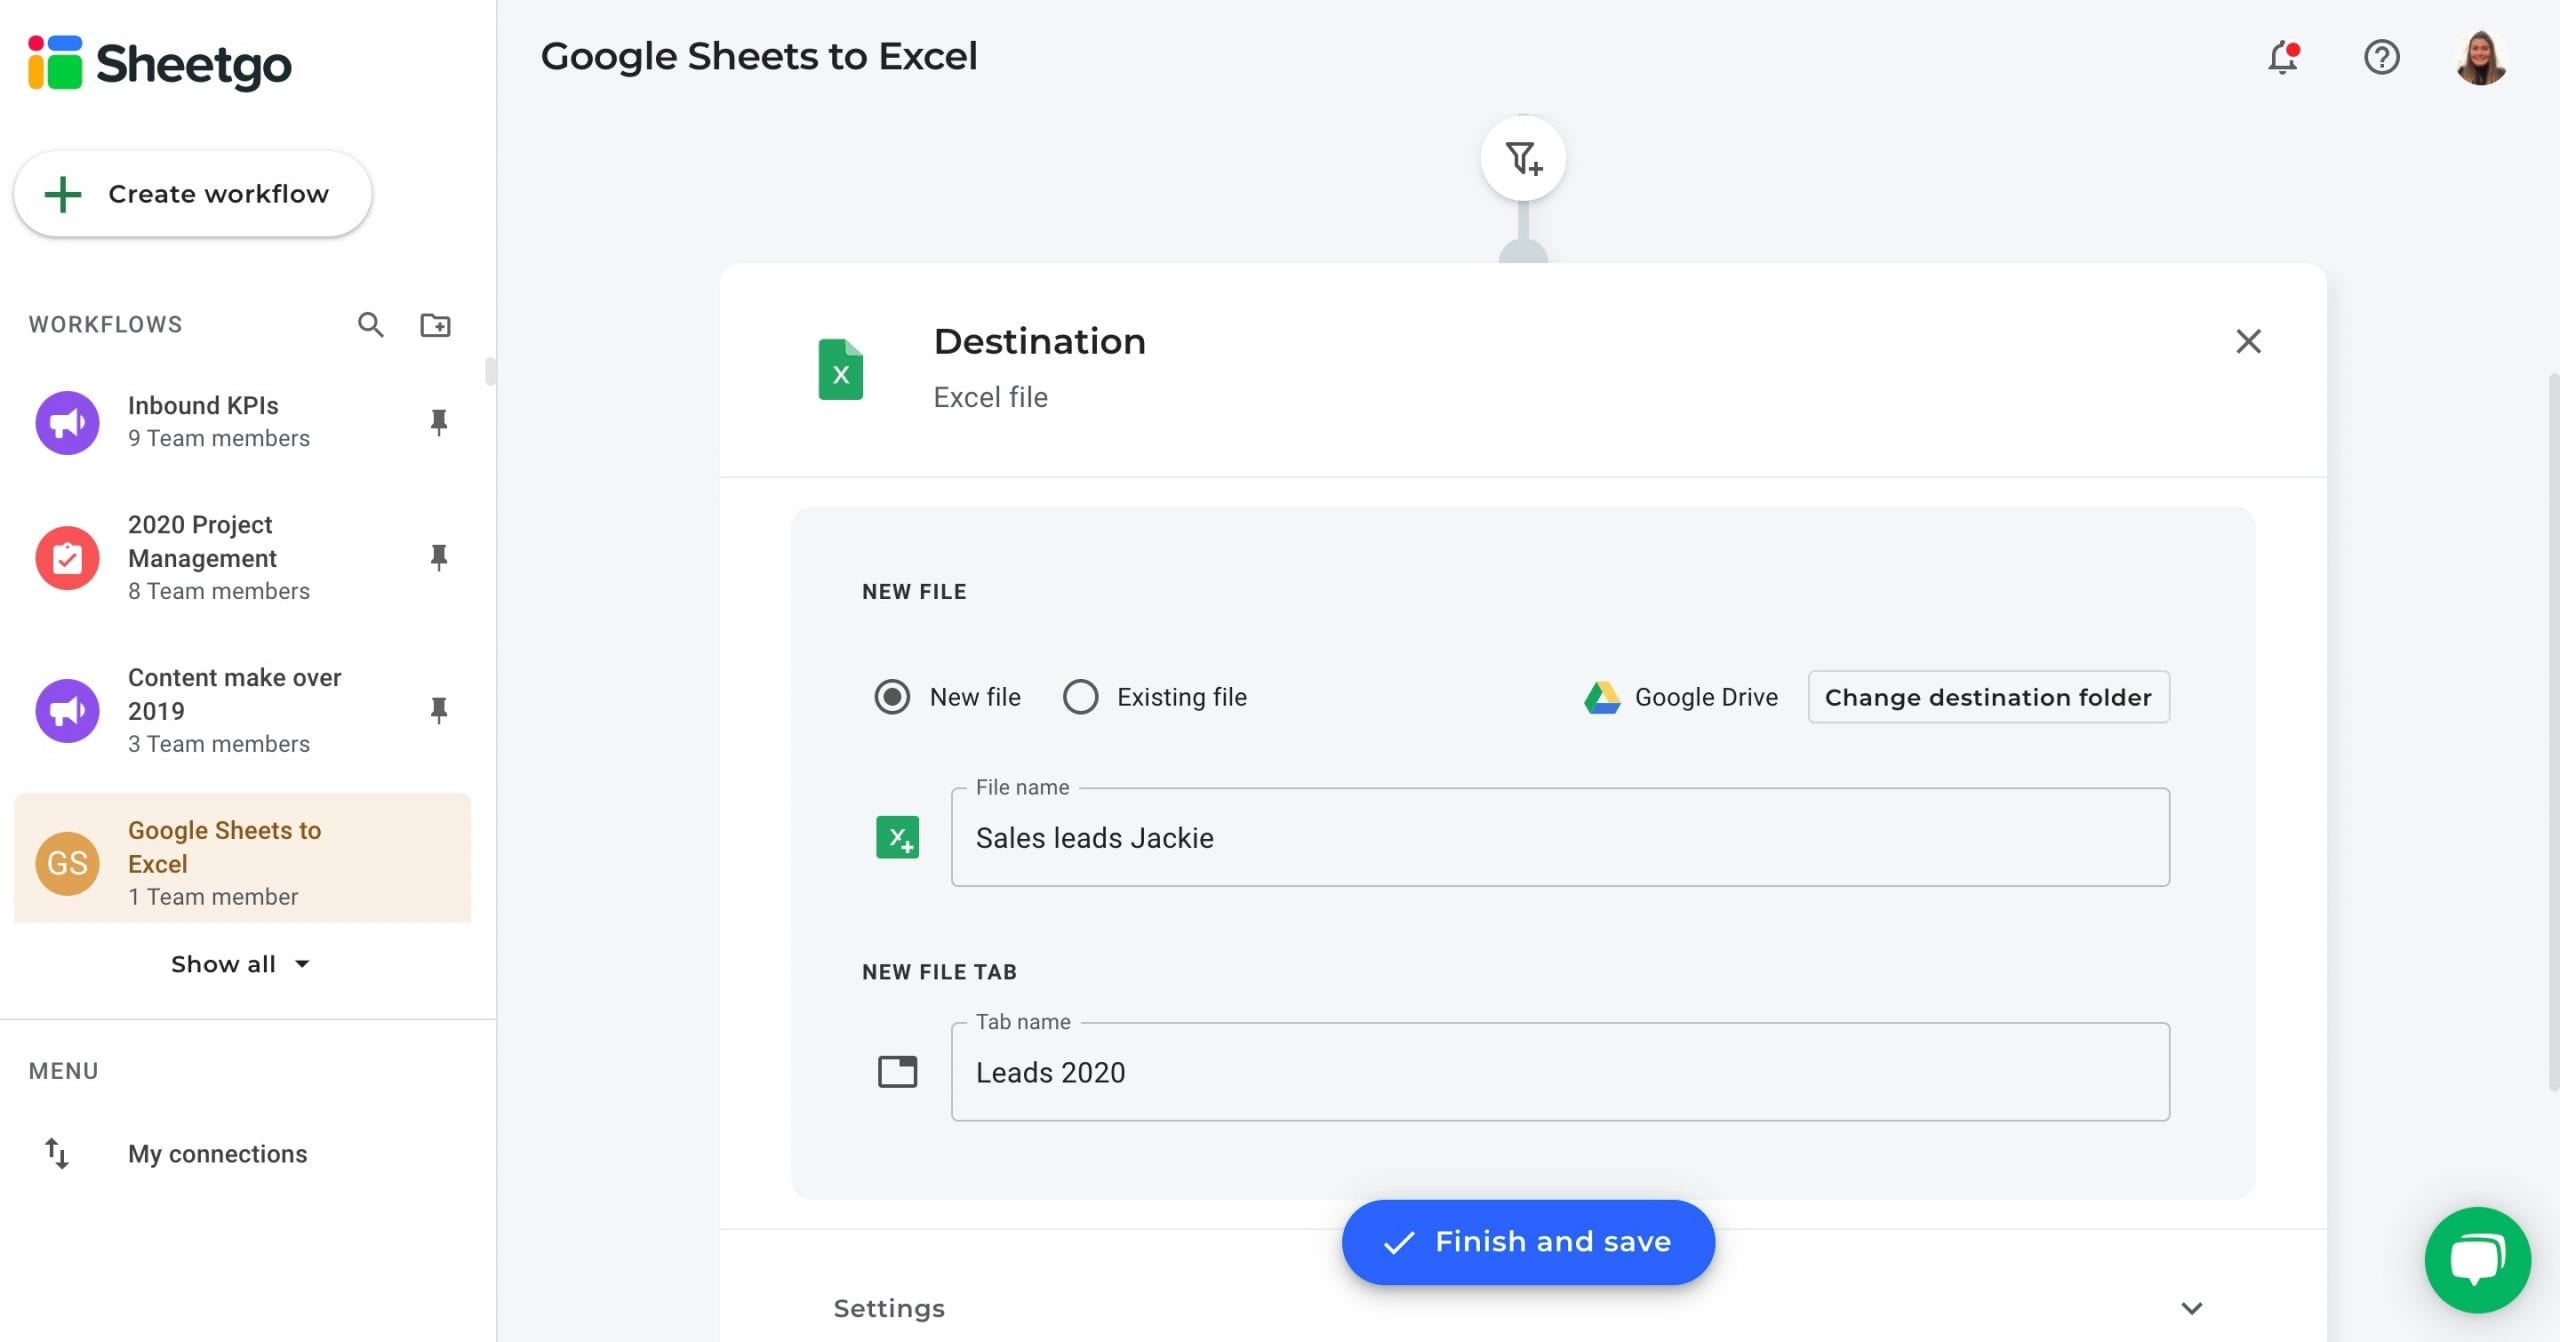 Google Sheets to Excel data destination